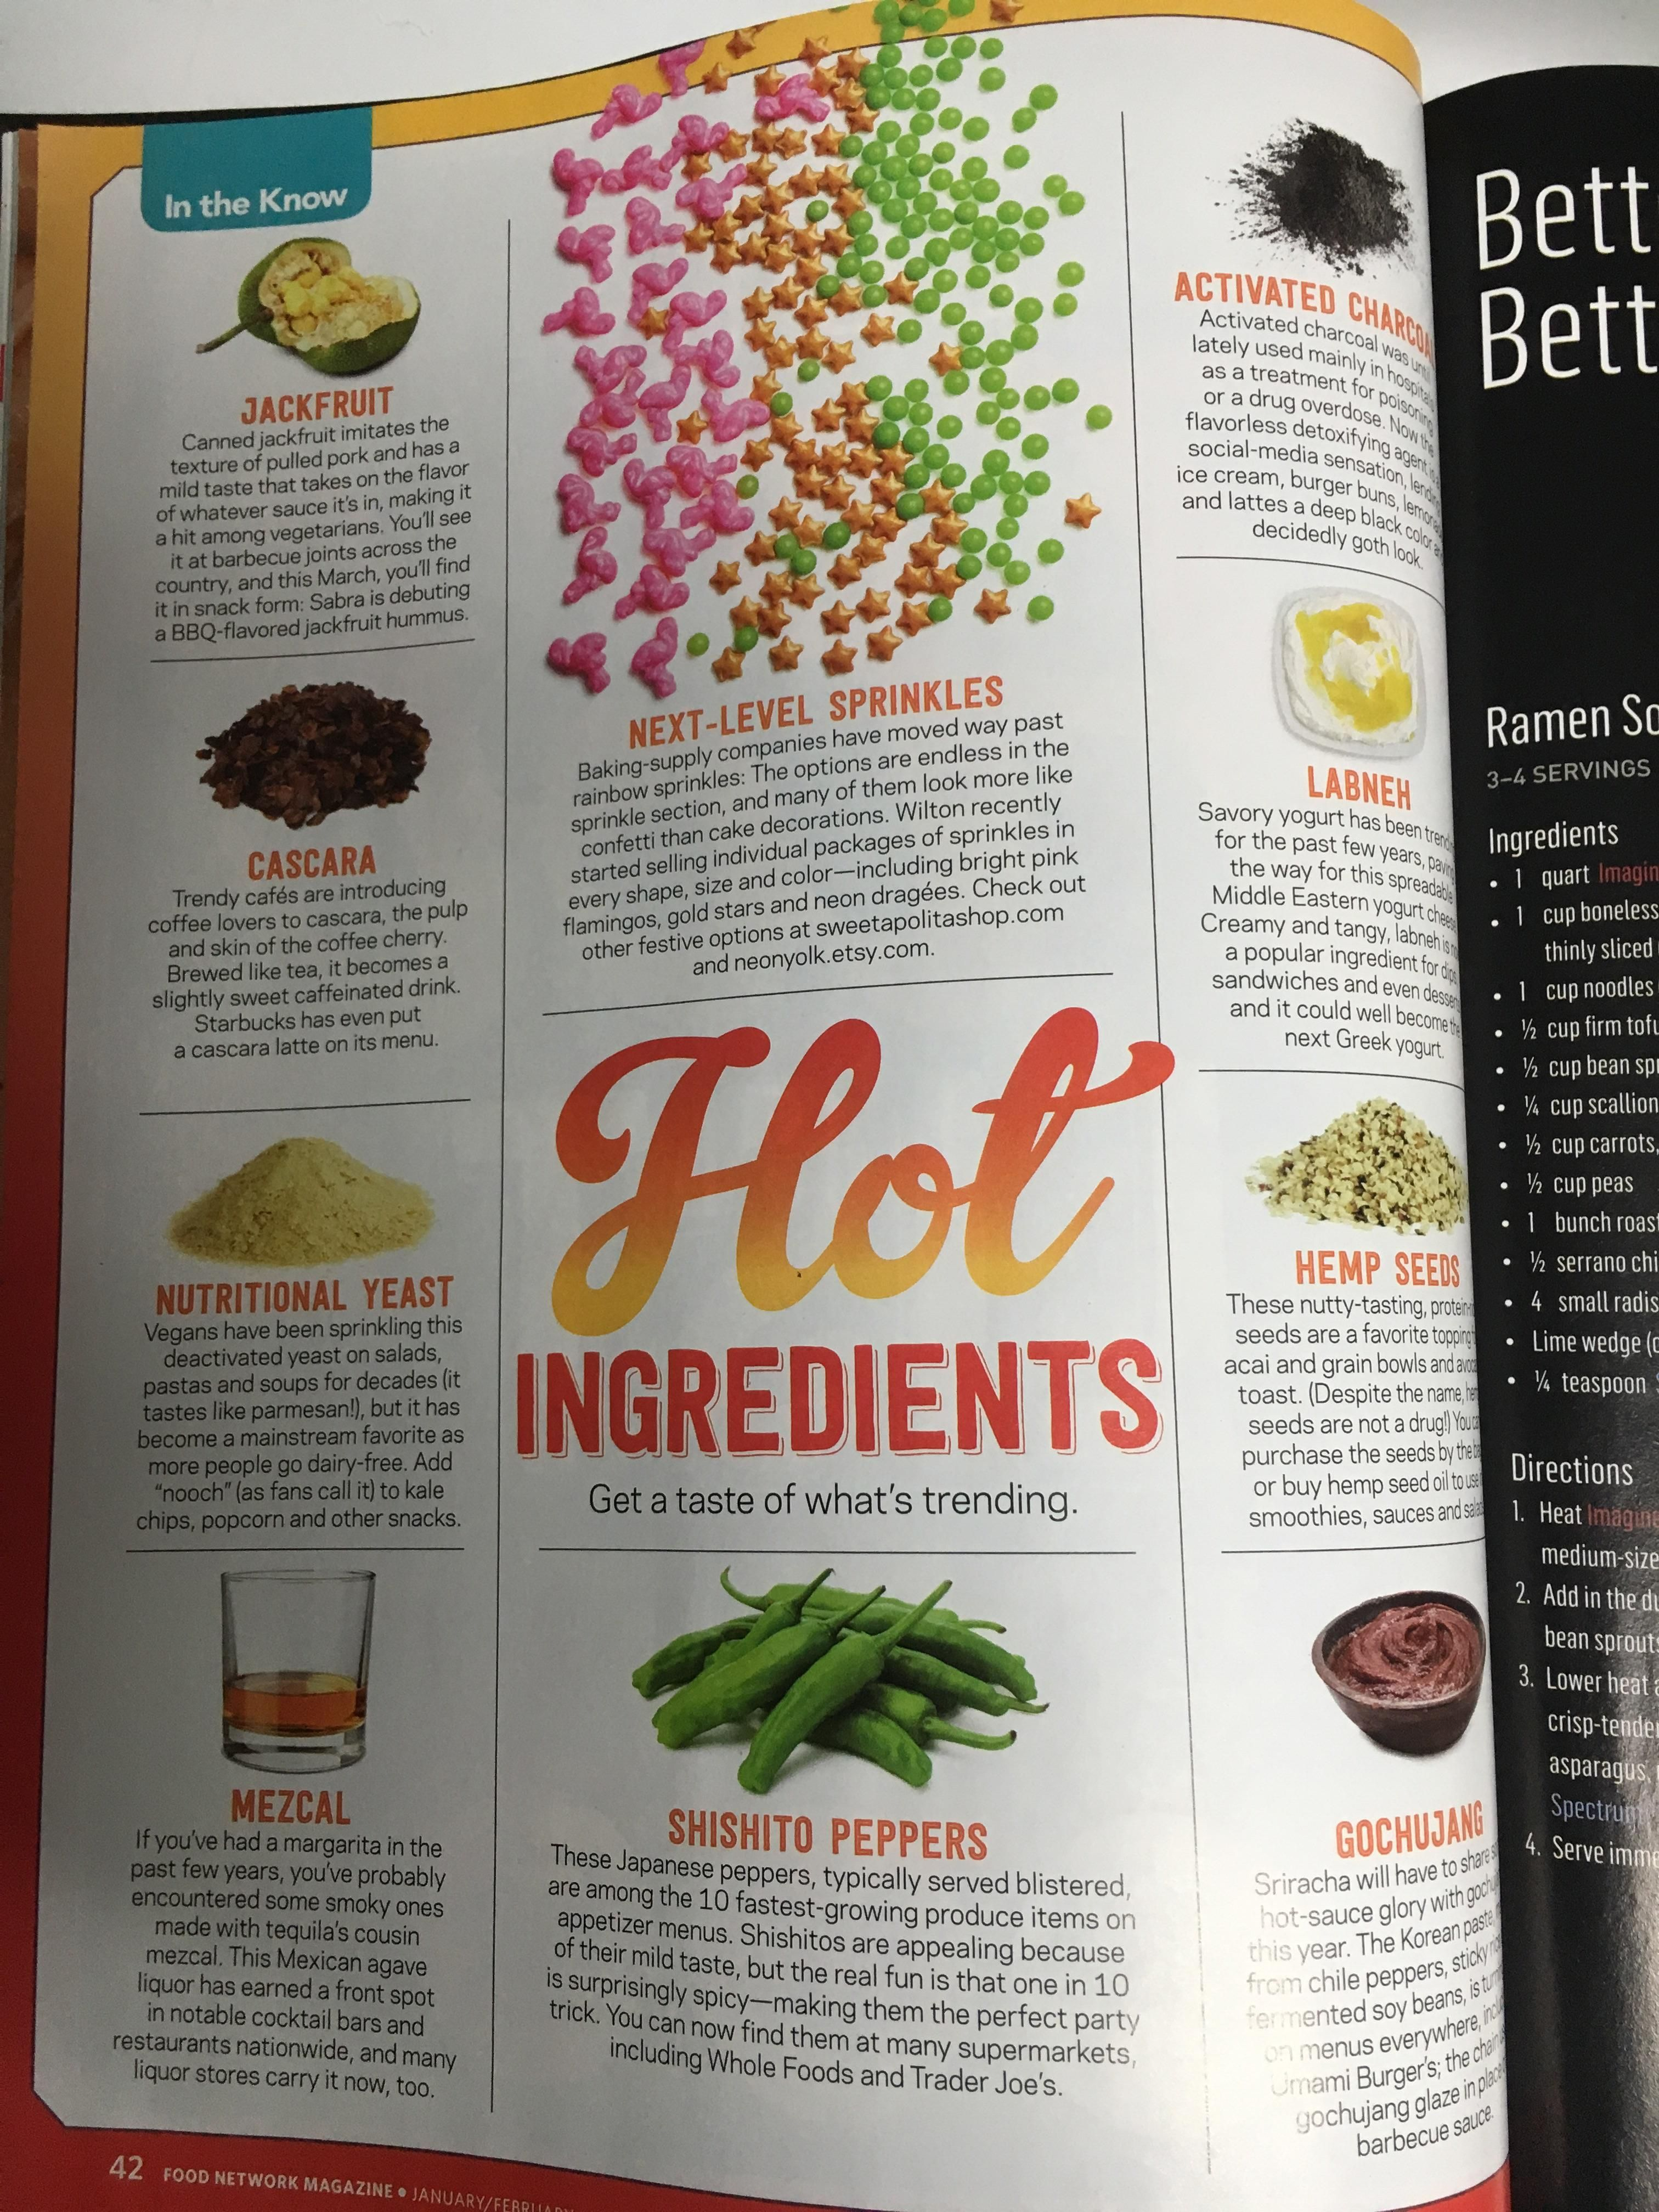 This months food network magazine getting on board with vegan foods this months food network magazine getting on board with vegan foods ugh so mainstream jk forumfinder